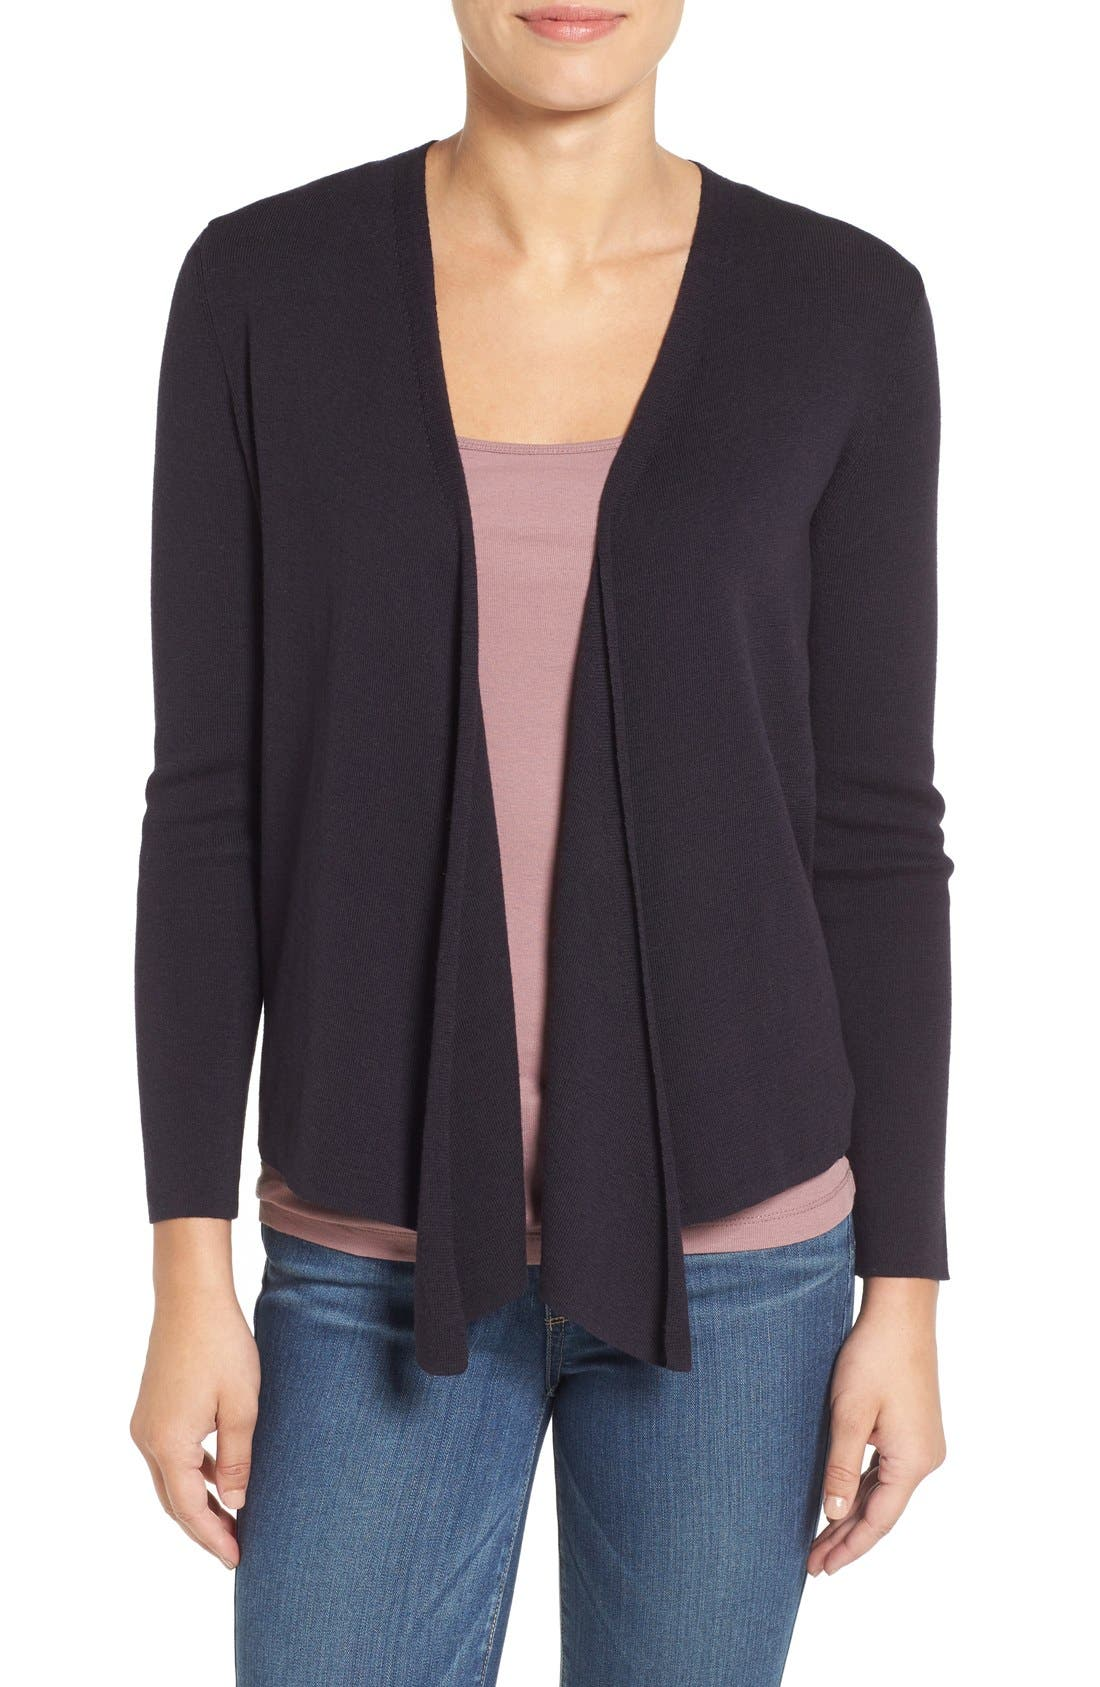 Main Image - NIC+ZOE Four-Way Convertible Cardigan (Regular & Petite)